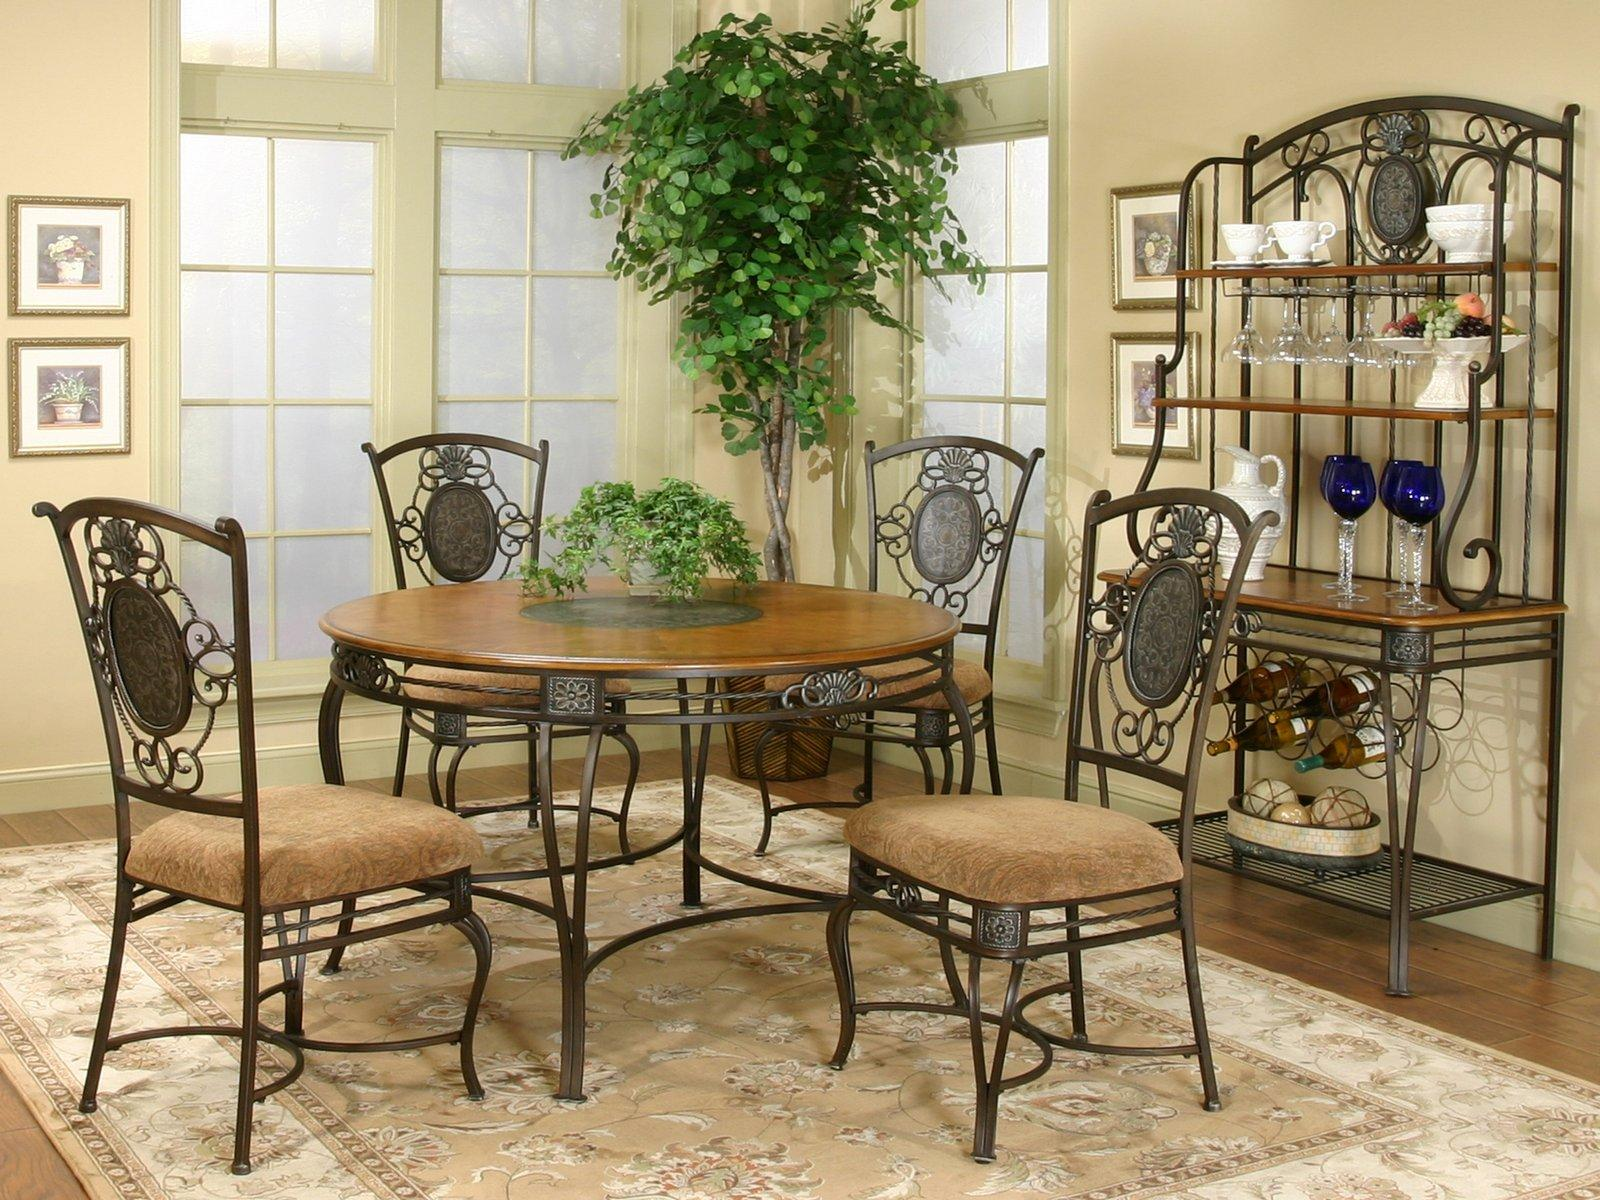 Image of: wrought iron chairs for dining room